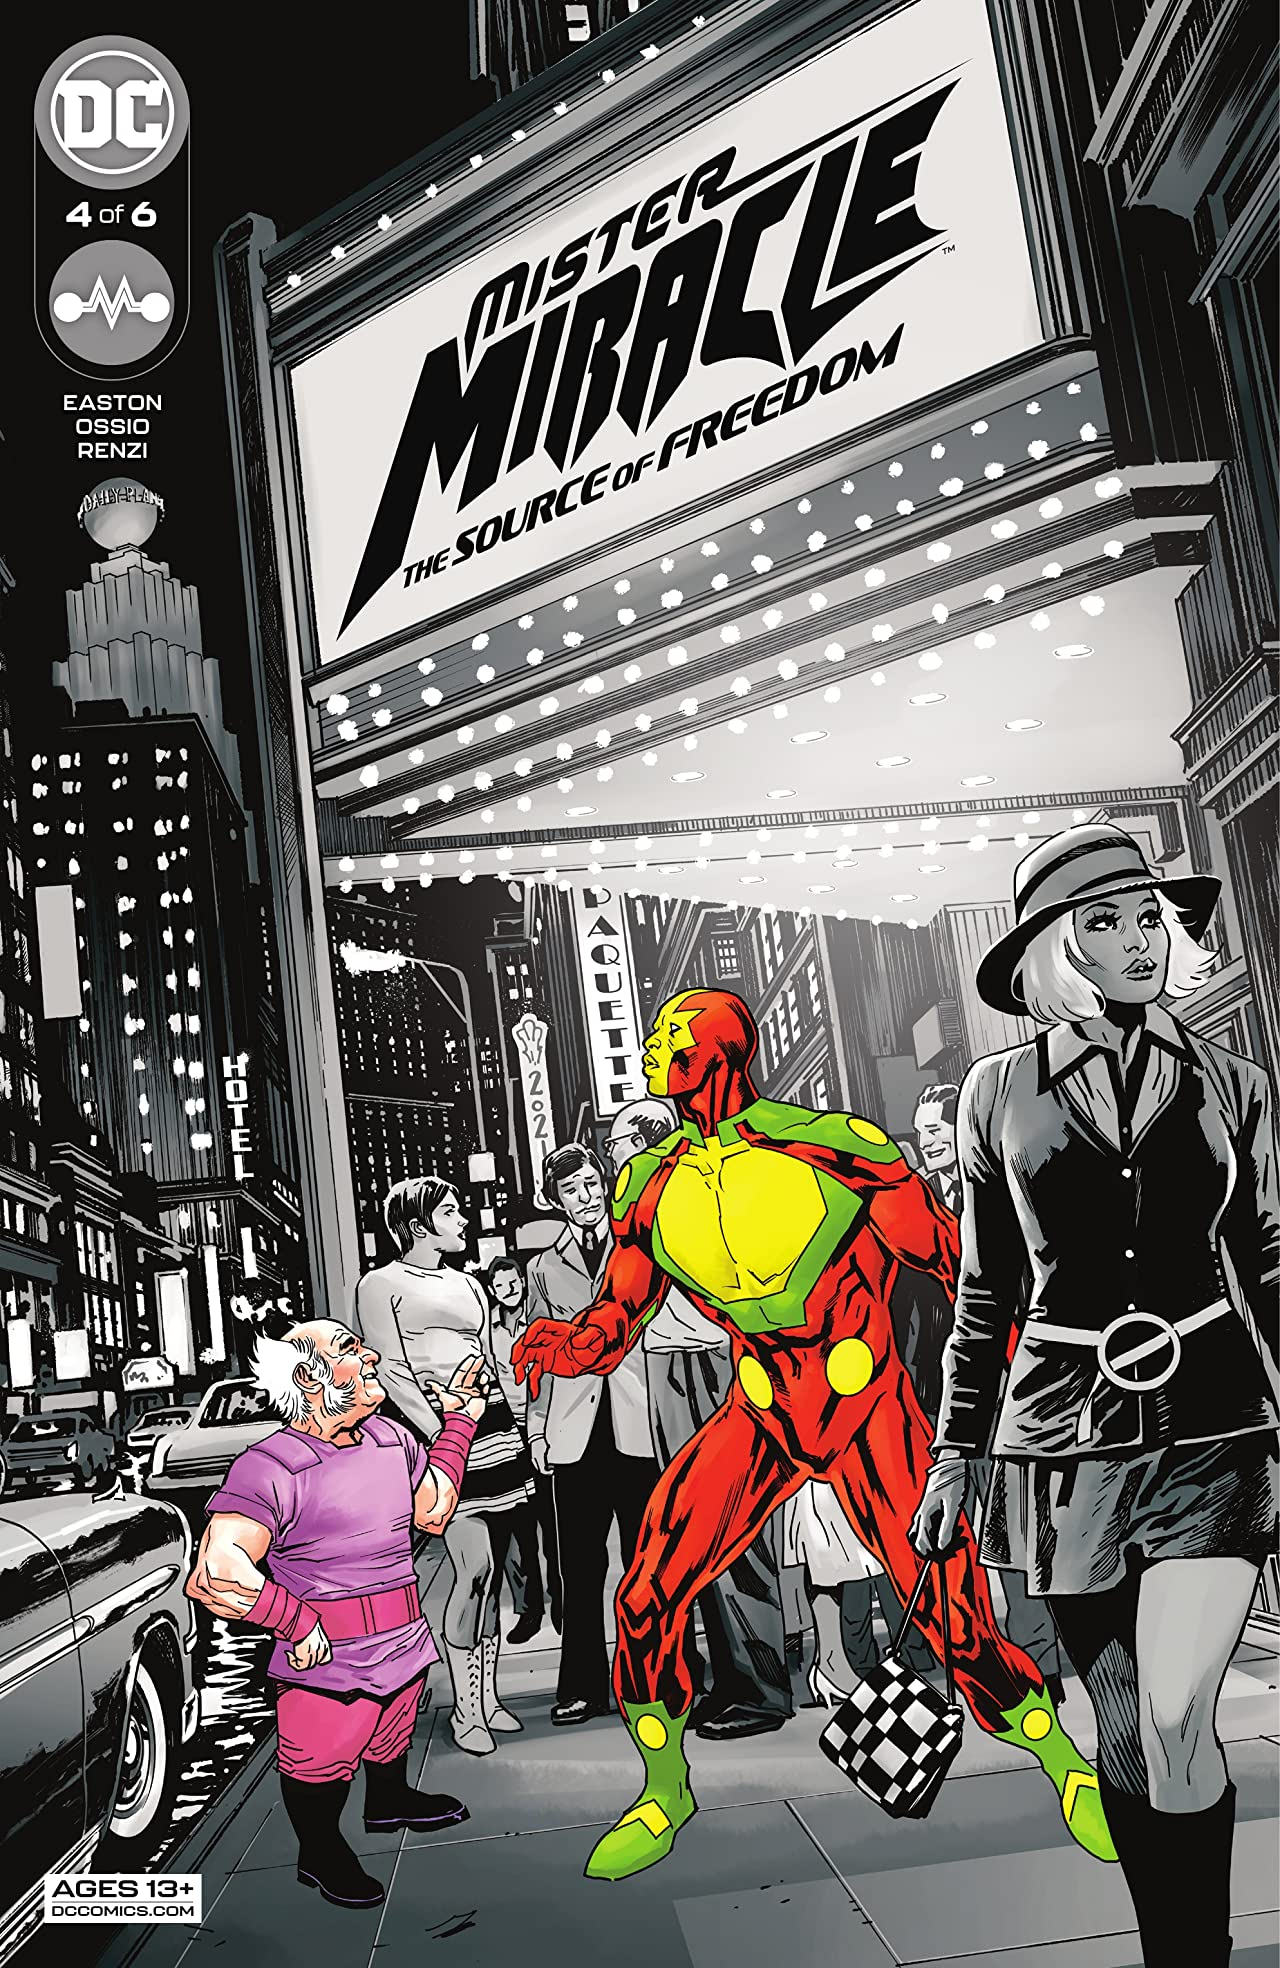 Mister Miracle (2021) #4: The Source of Freedom